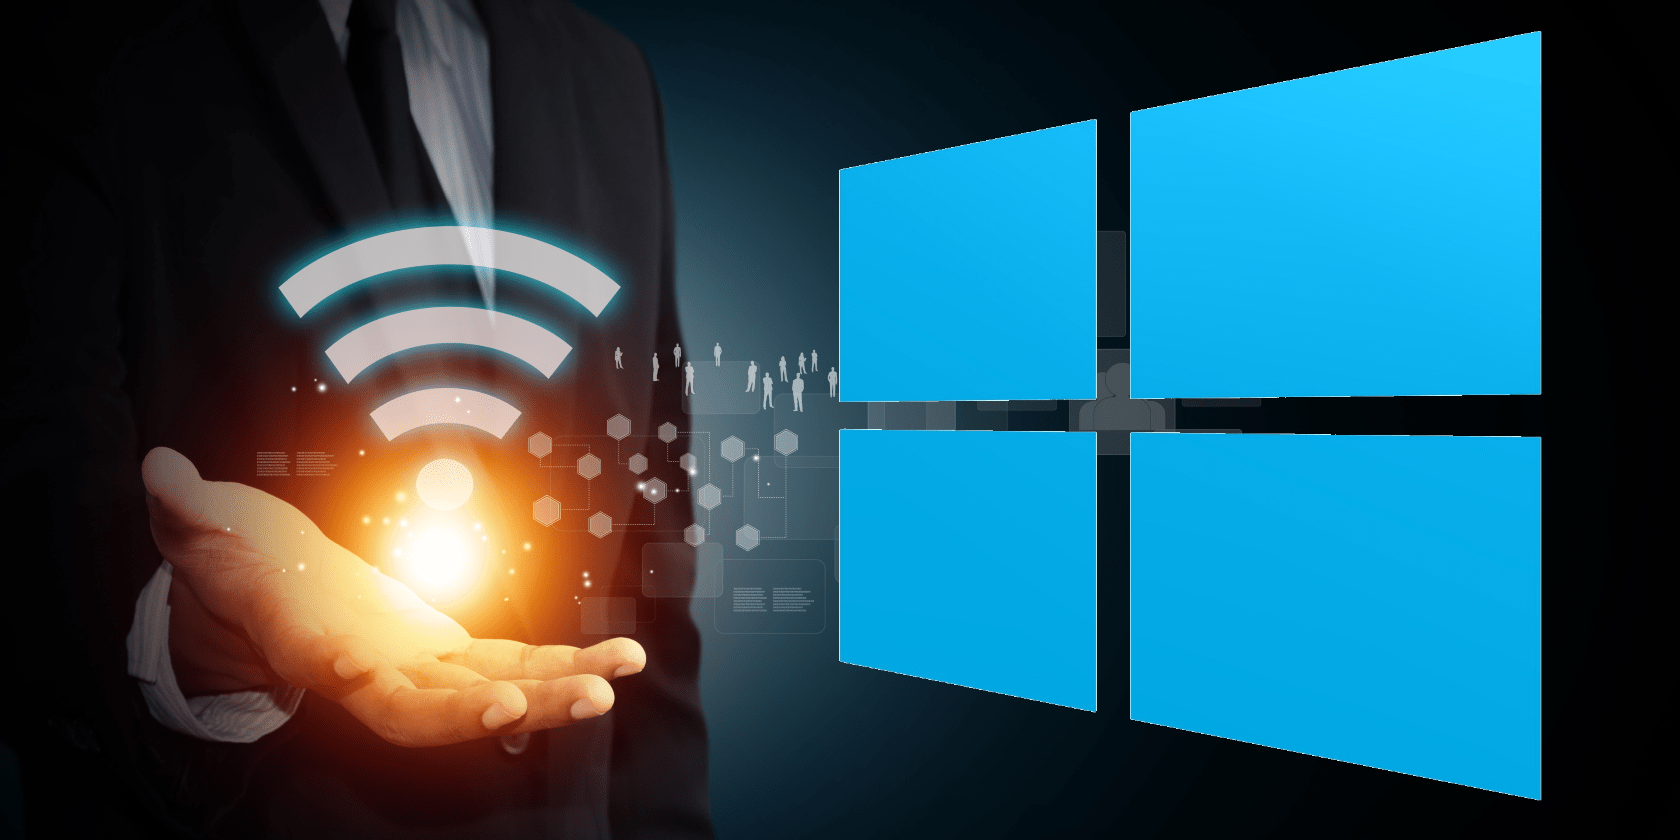 How to Find and Change Your Wi-Fi Password on Windows 10